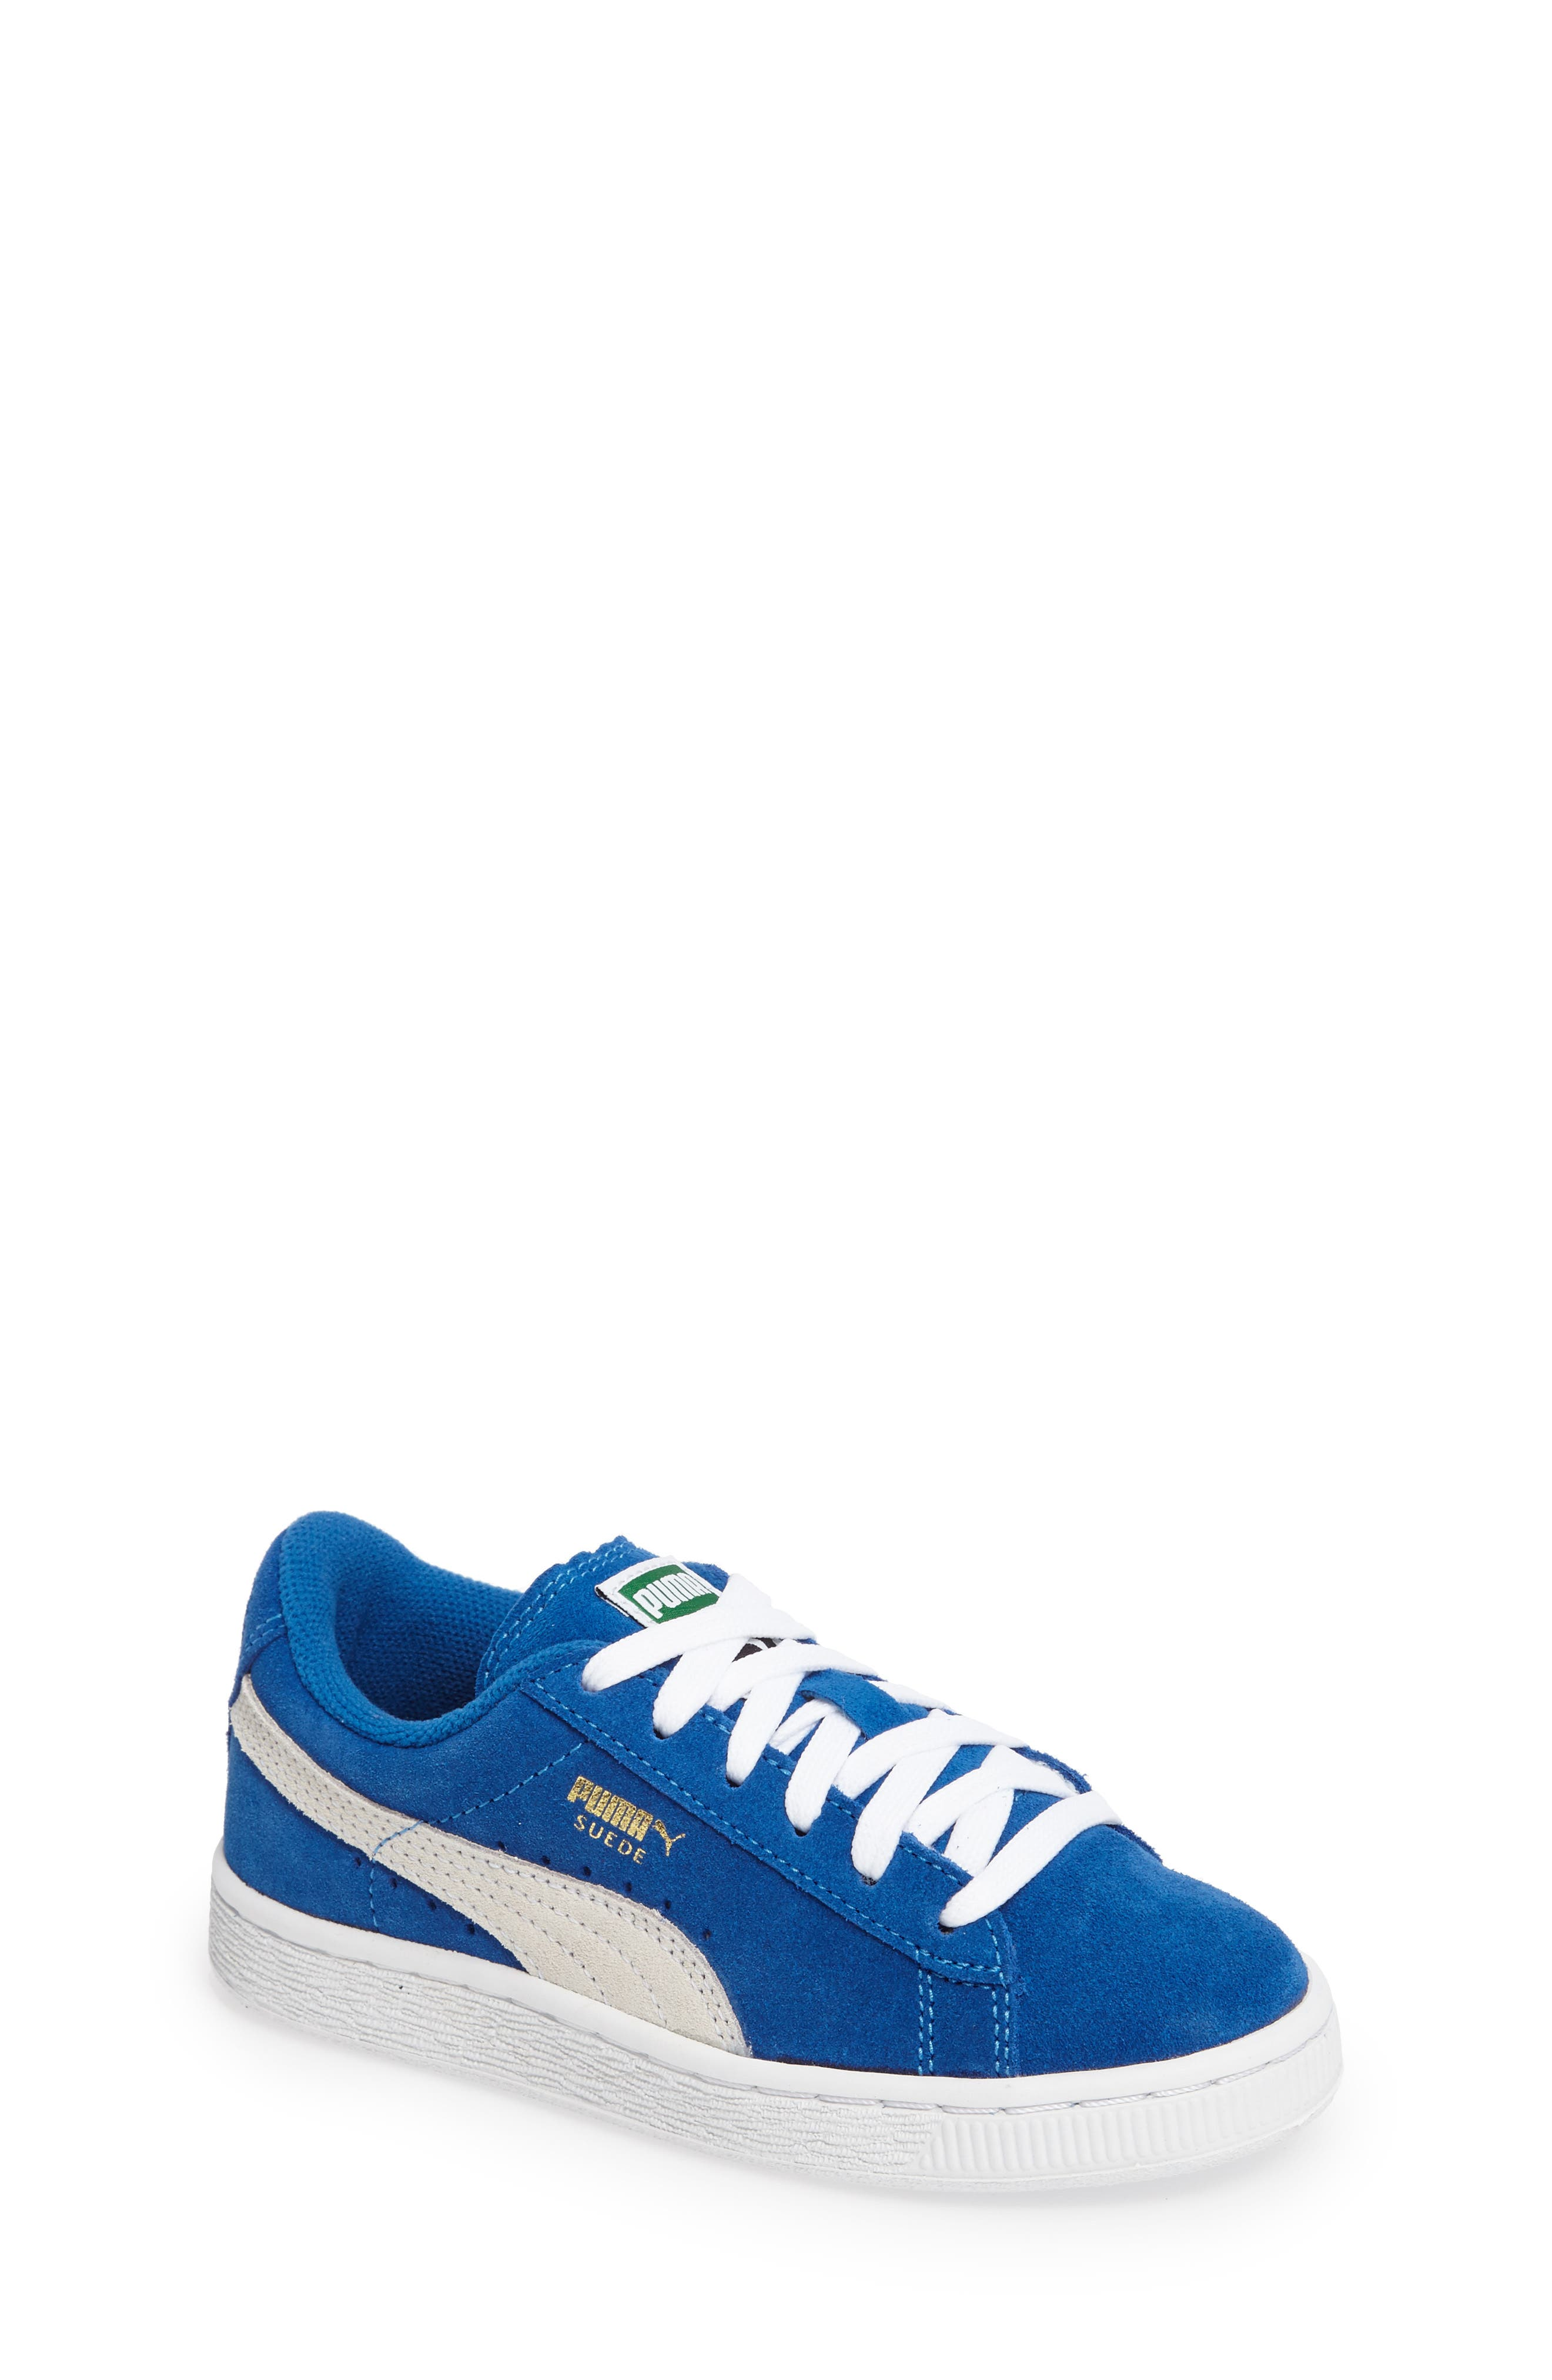 Suede PS Sneaker,                             Main thumbnail 1, color,                             400